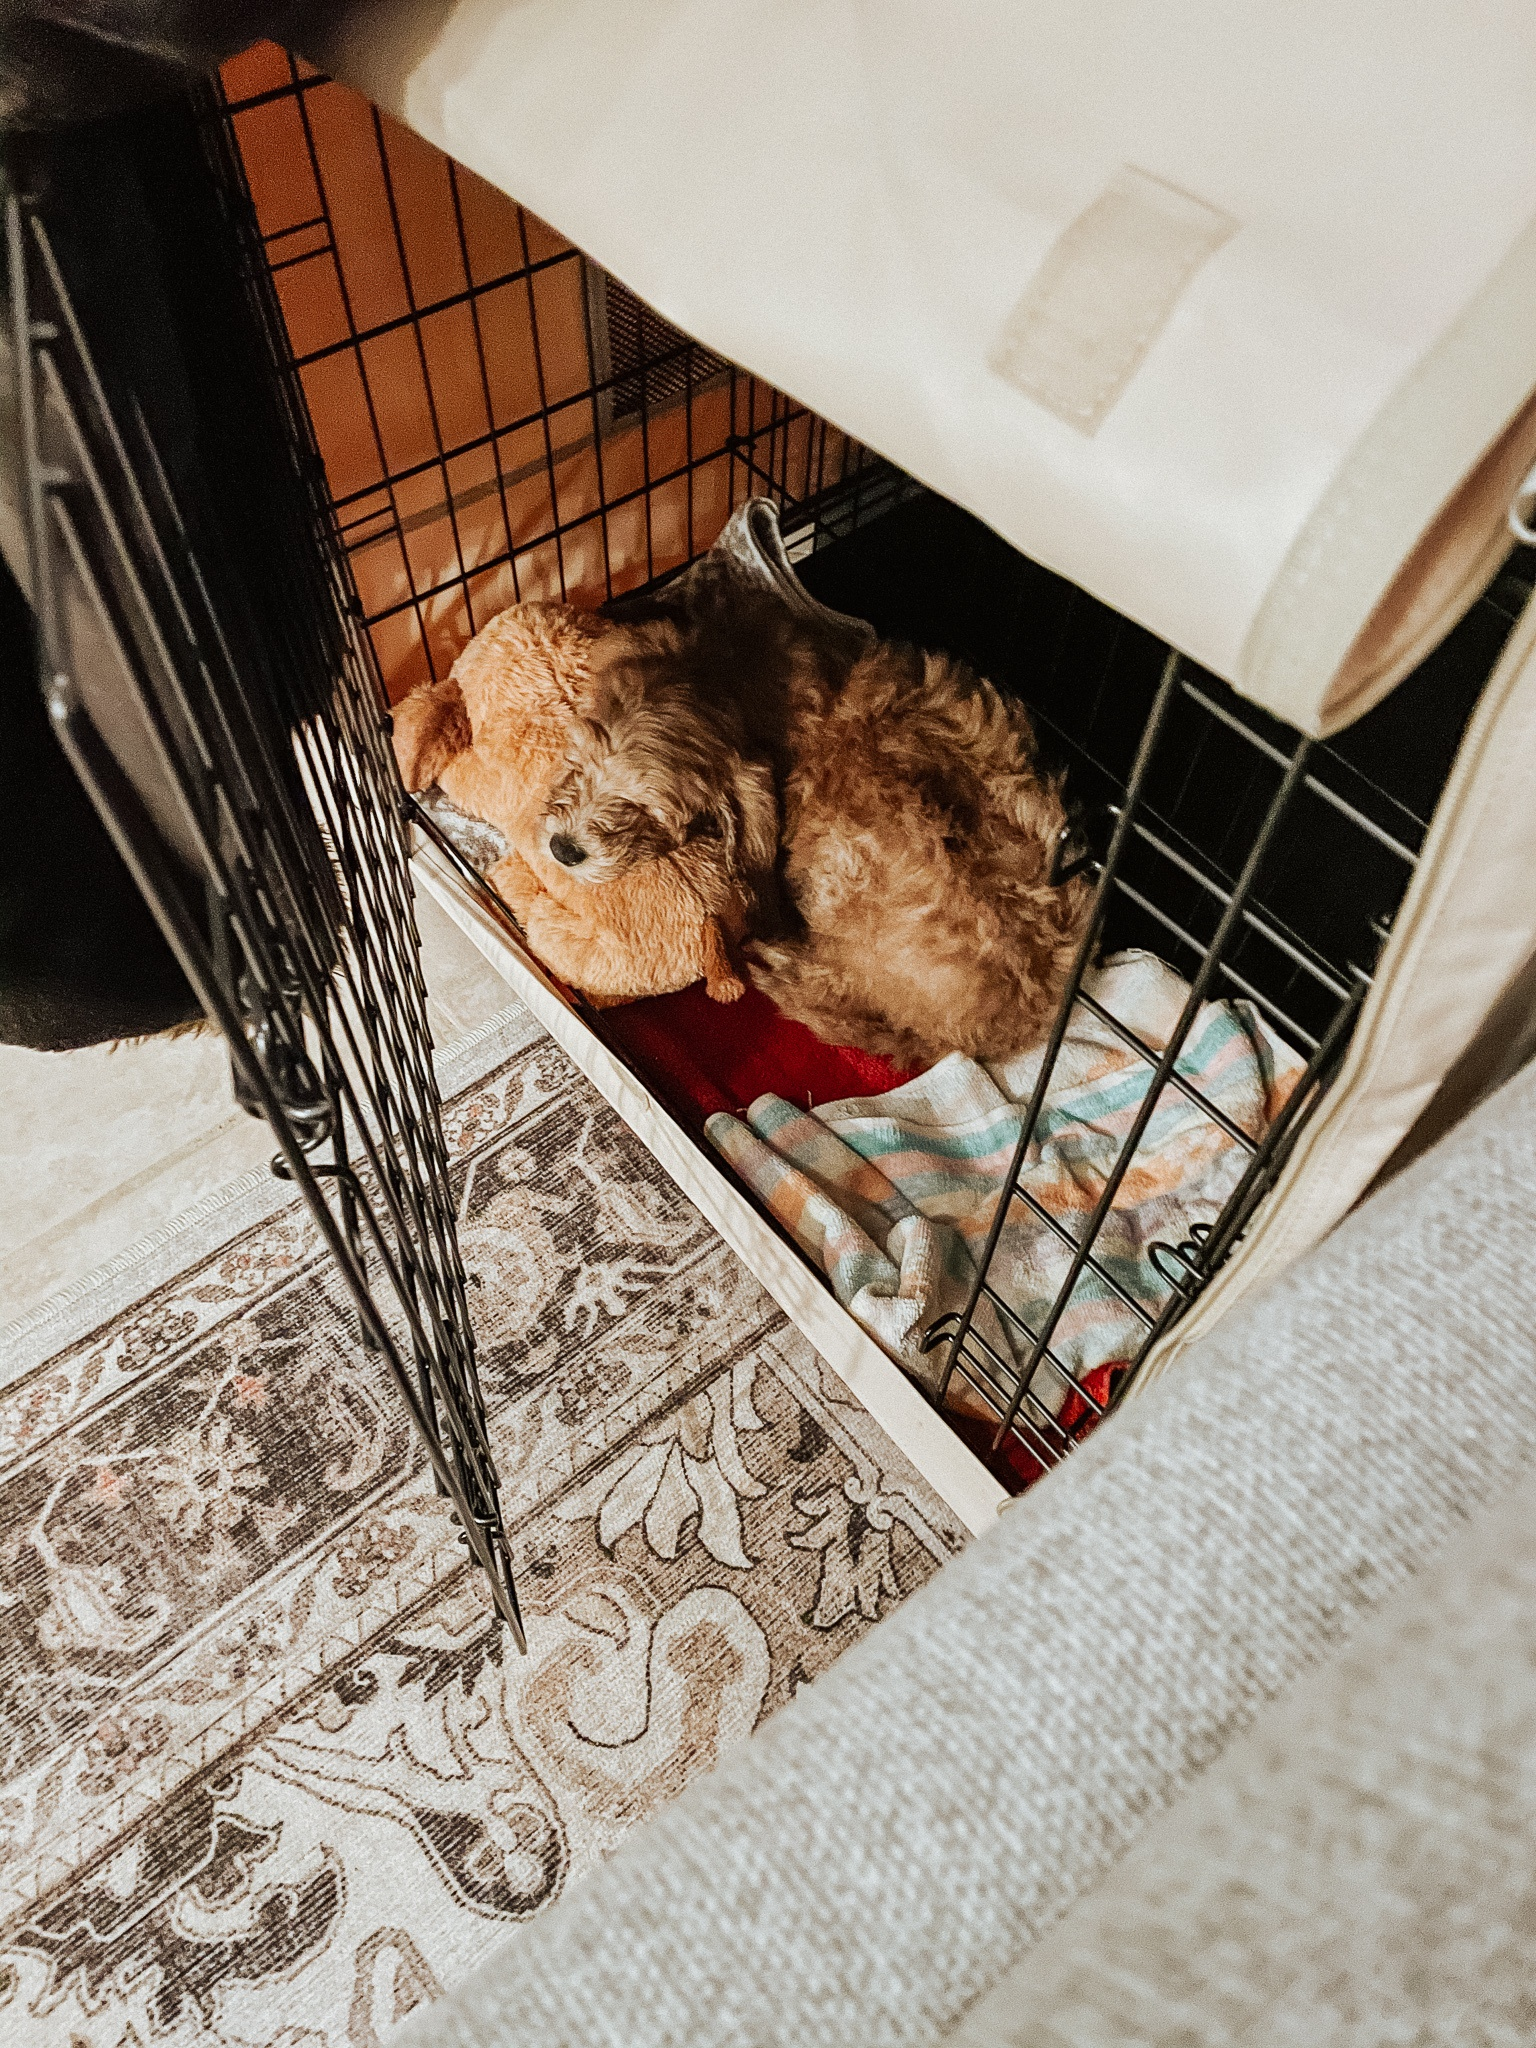 Learn how to crate train a puppy to actually enjoy their crate & sleep through the night in this blog post from Kelsey of Blondes & Bagels!